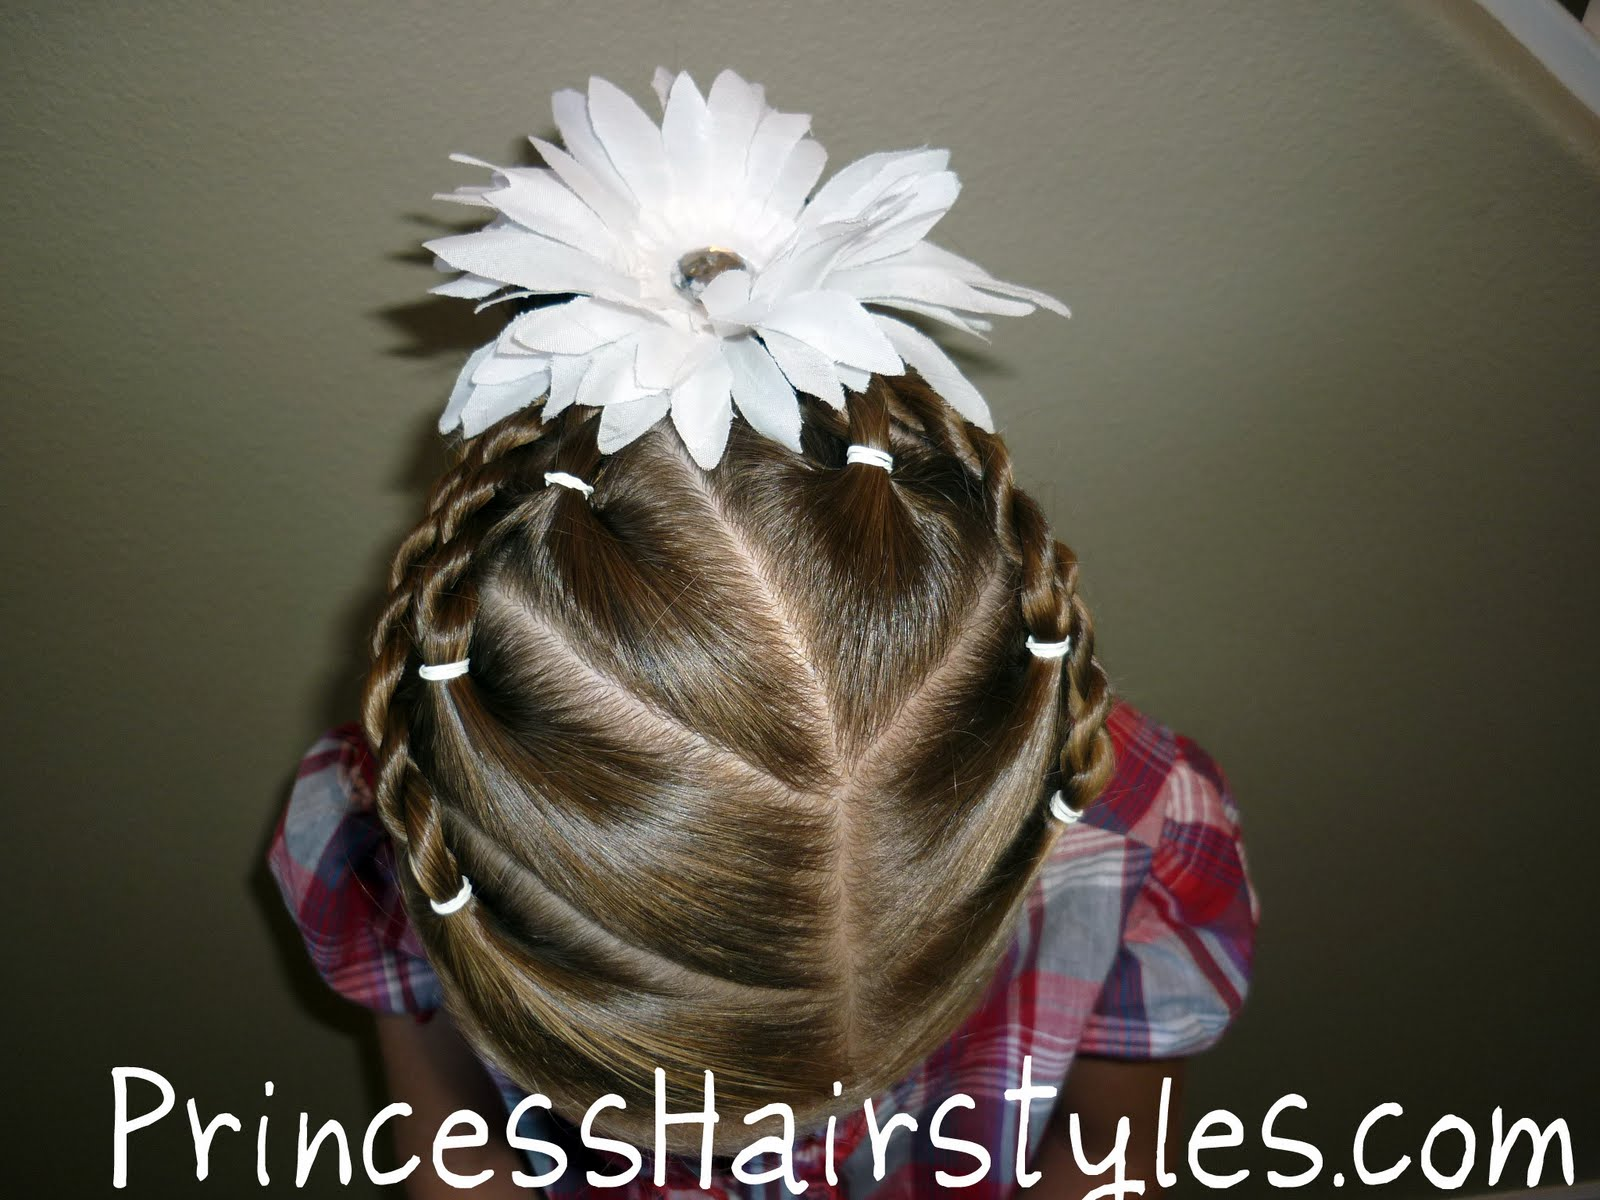 Tremendous Cute Hairstyle For Sports Hairstyles For Girls Princess Hairstyles Short Hairstyles Gunalazisus